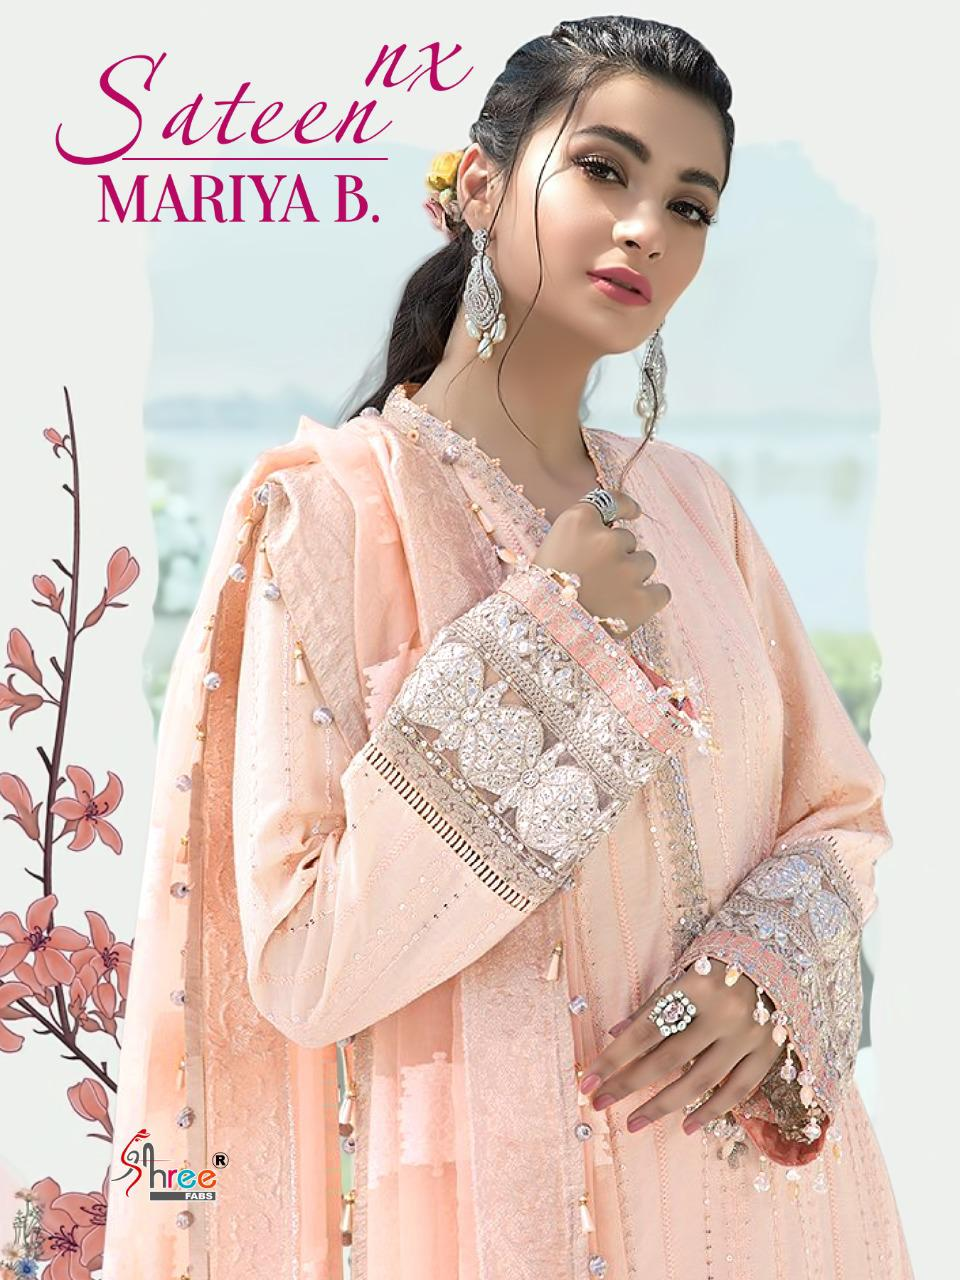 Shree Fabs Sateen Mariya B Nx Salwar Suit Wholesale Catalog 4 Pcs 1 - Shree Fabs Sateen Mariya B Nx Salwar Suit Wholesale Catalog 4 Pcs